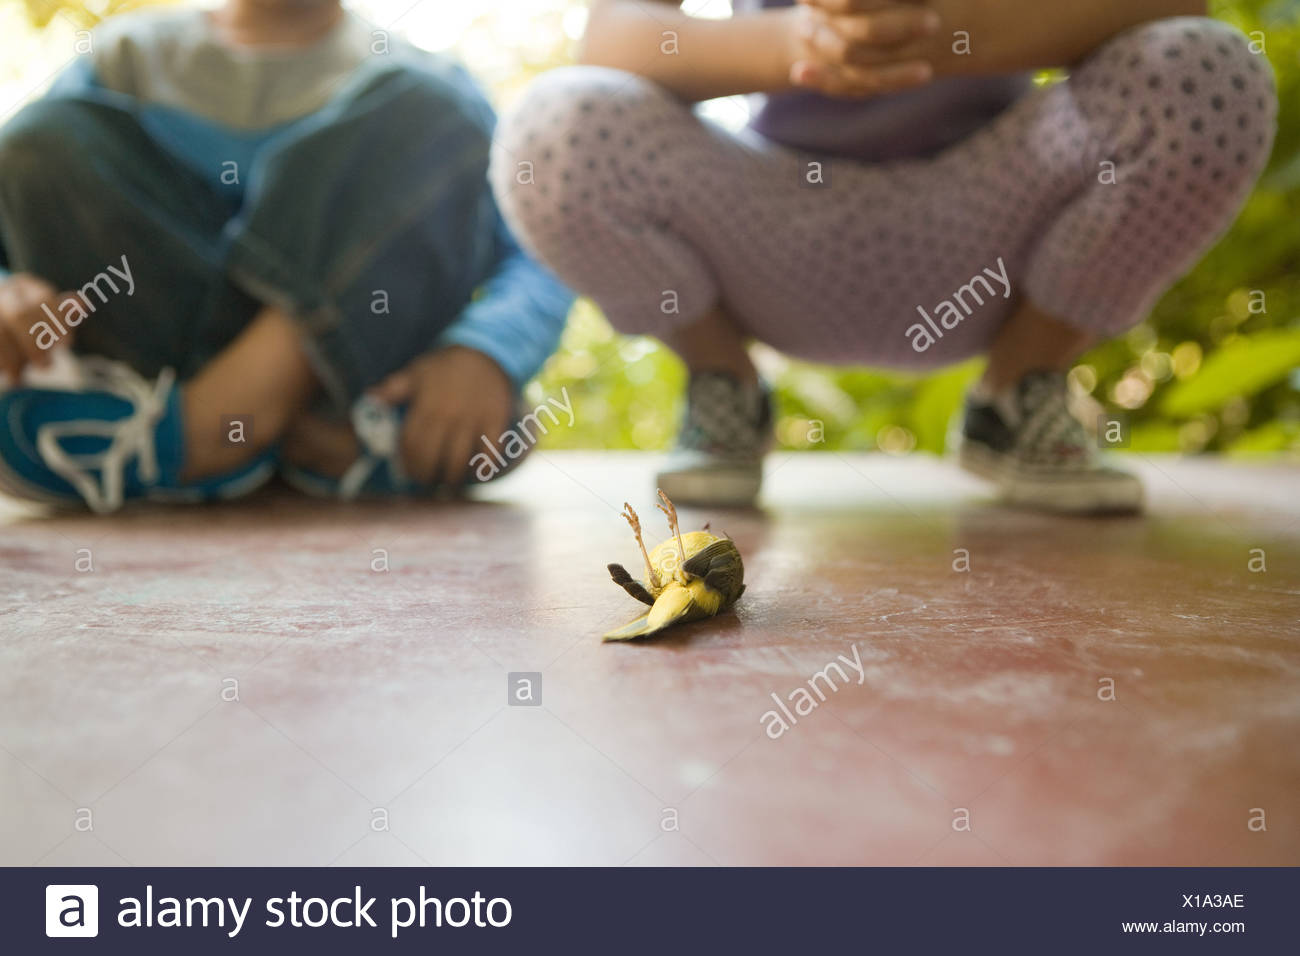 Two children looking at dead bird - Stock Image